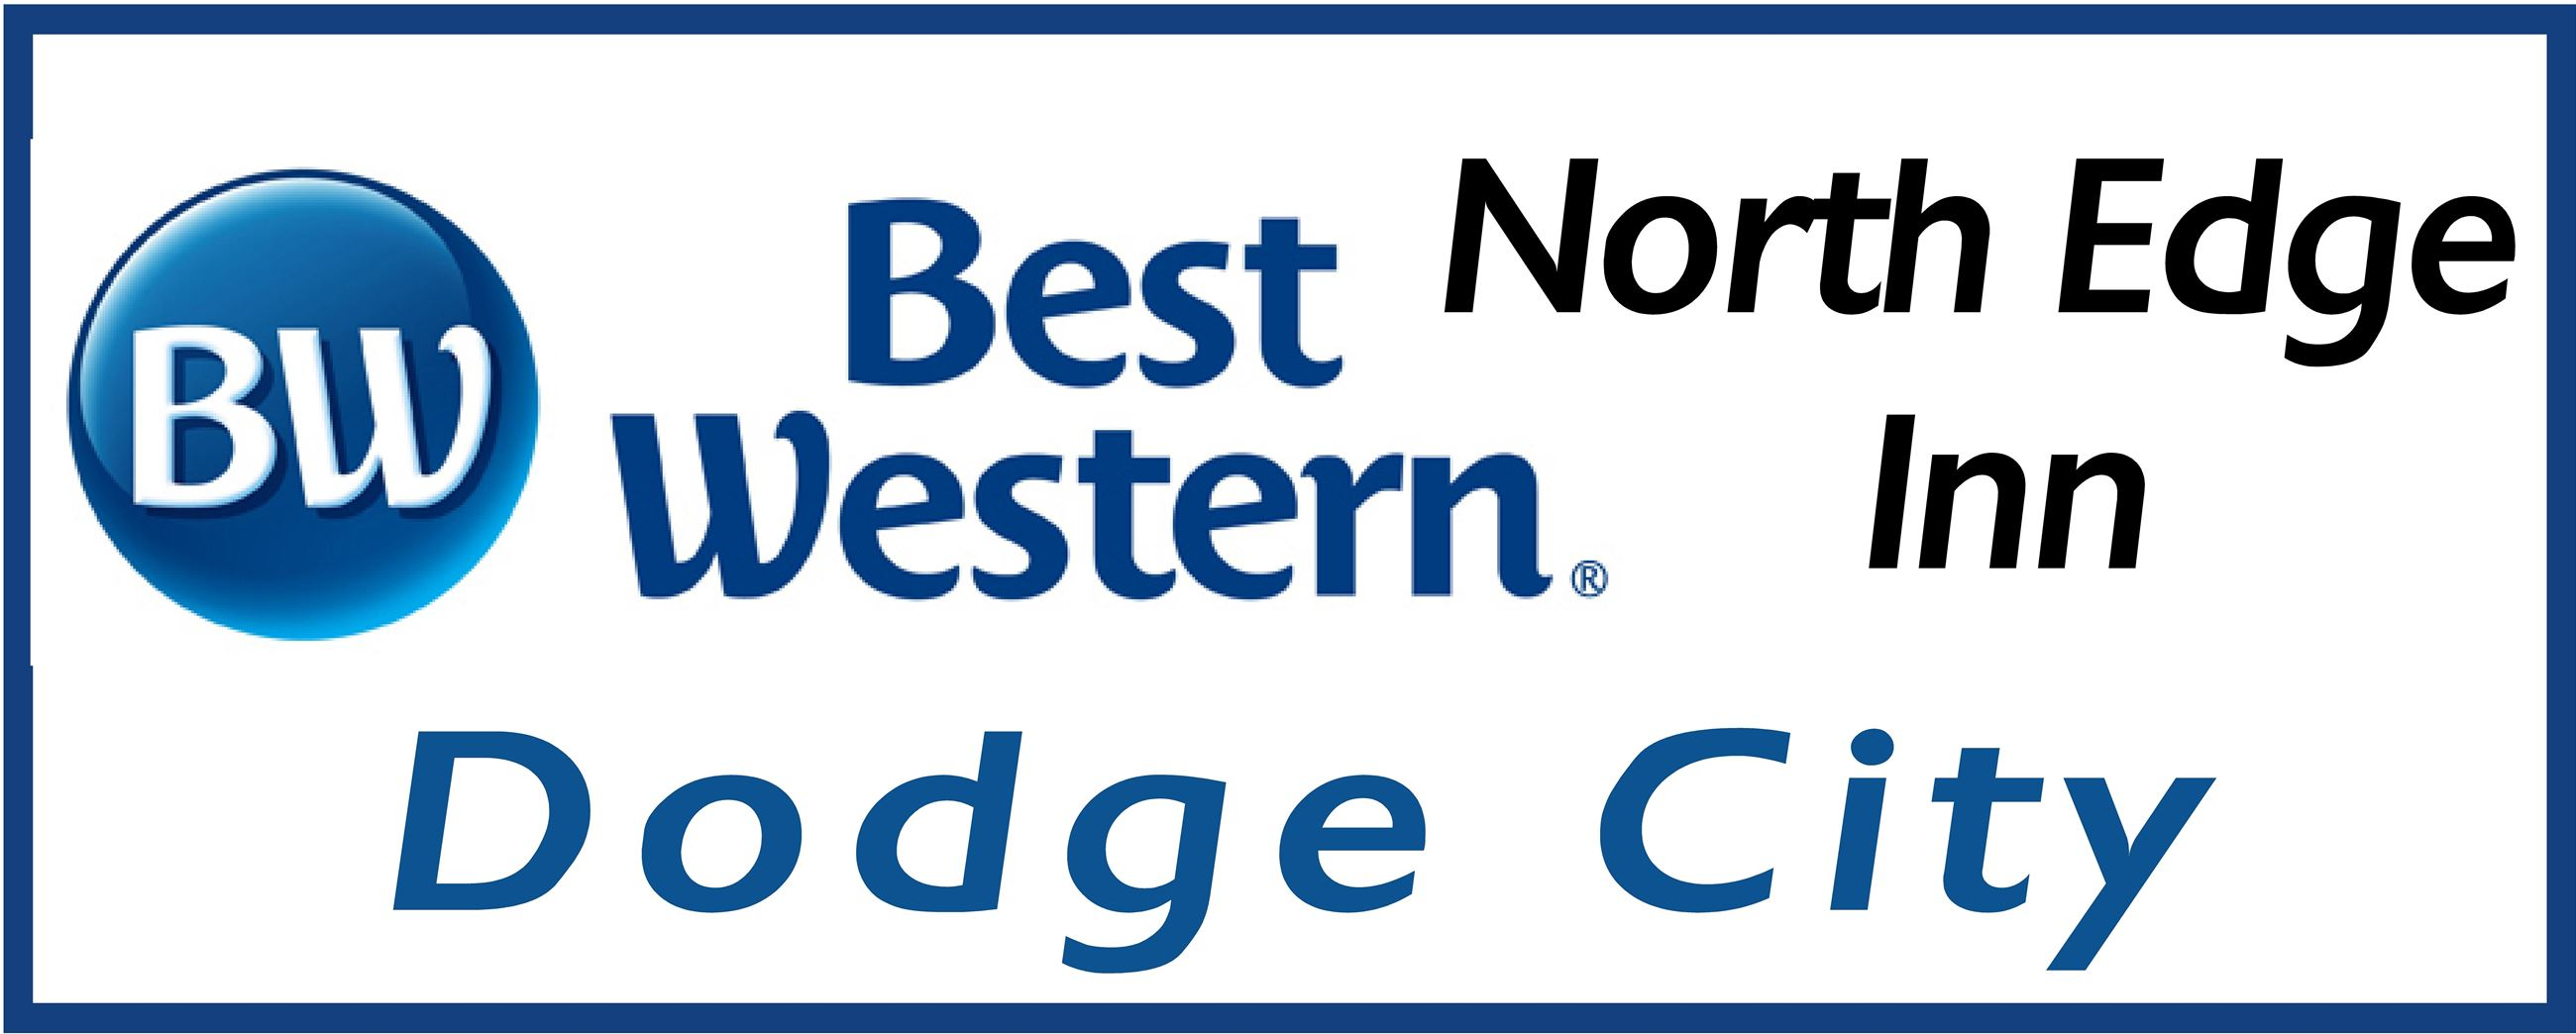 bestwestern north edge